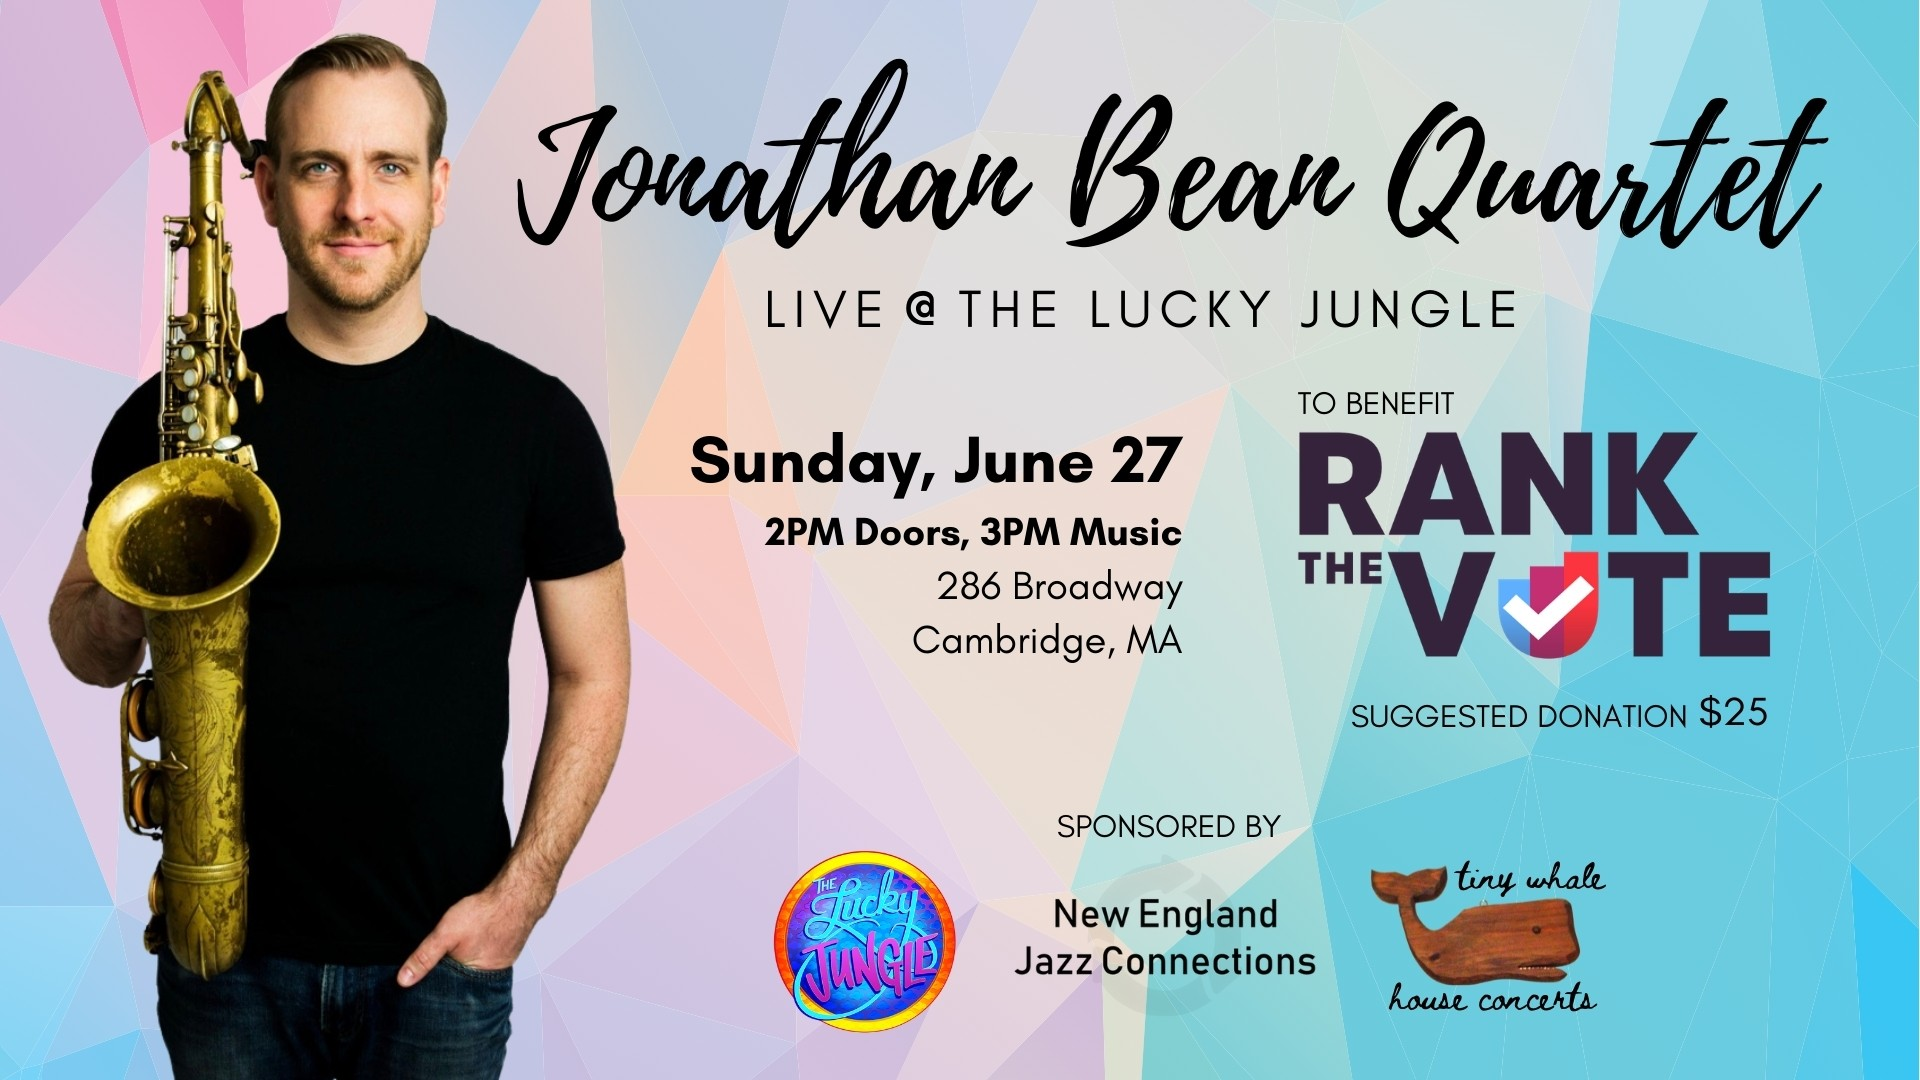 Jonathan Bean Quartet - Live at The Lucky Jungle. Sunday June 27th at 3PM. To Benefit Rank the Vote.